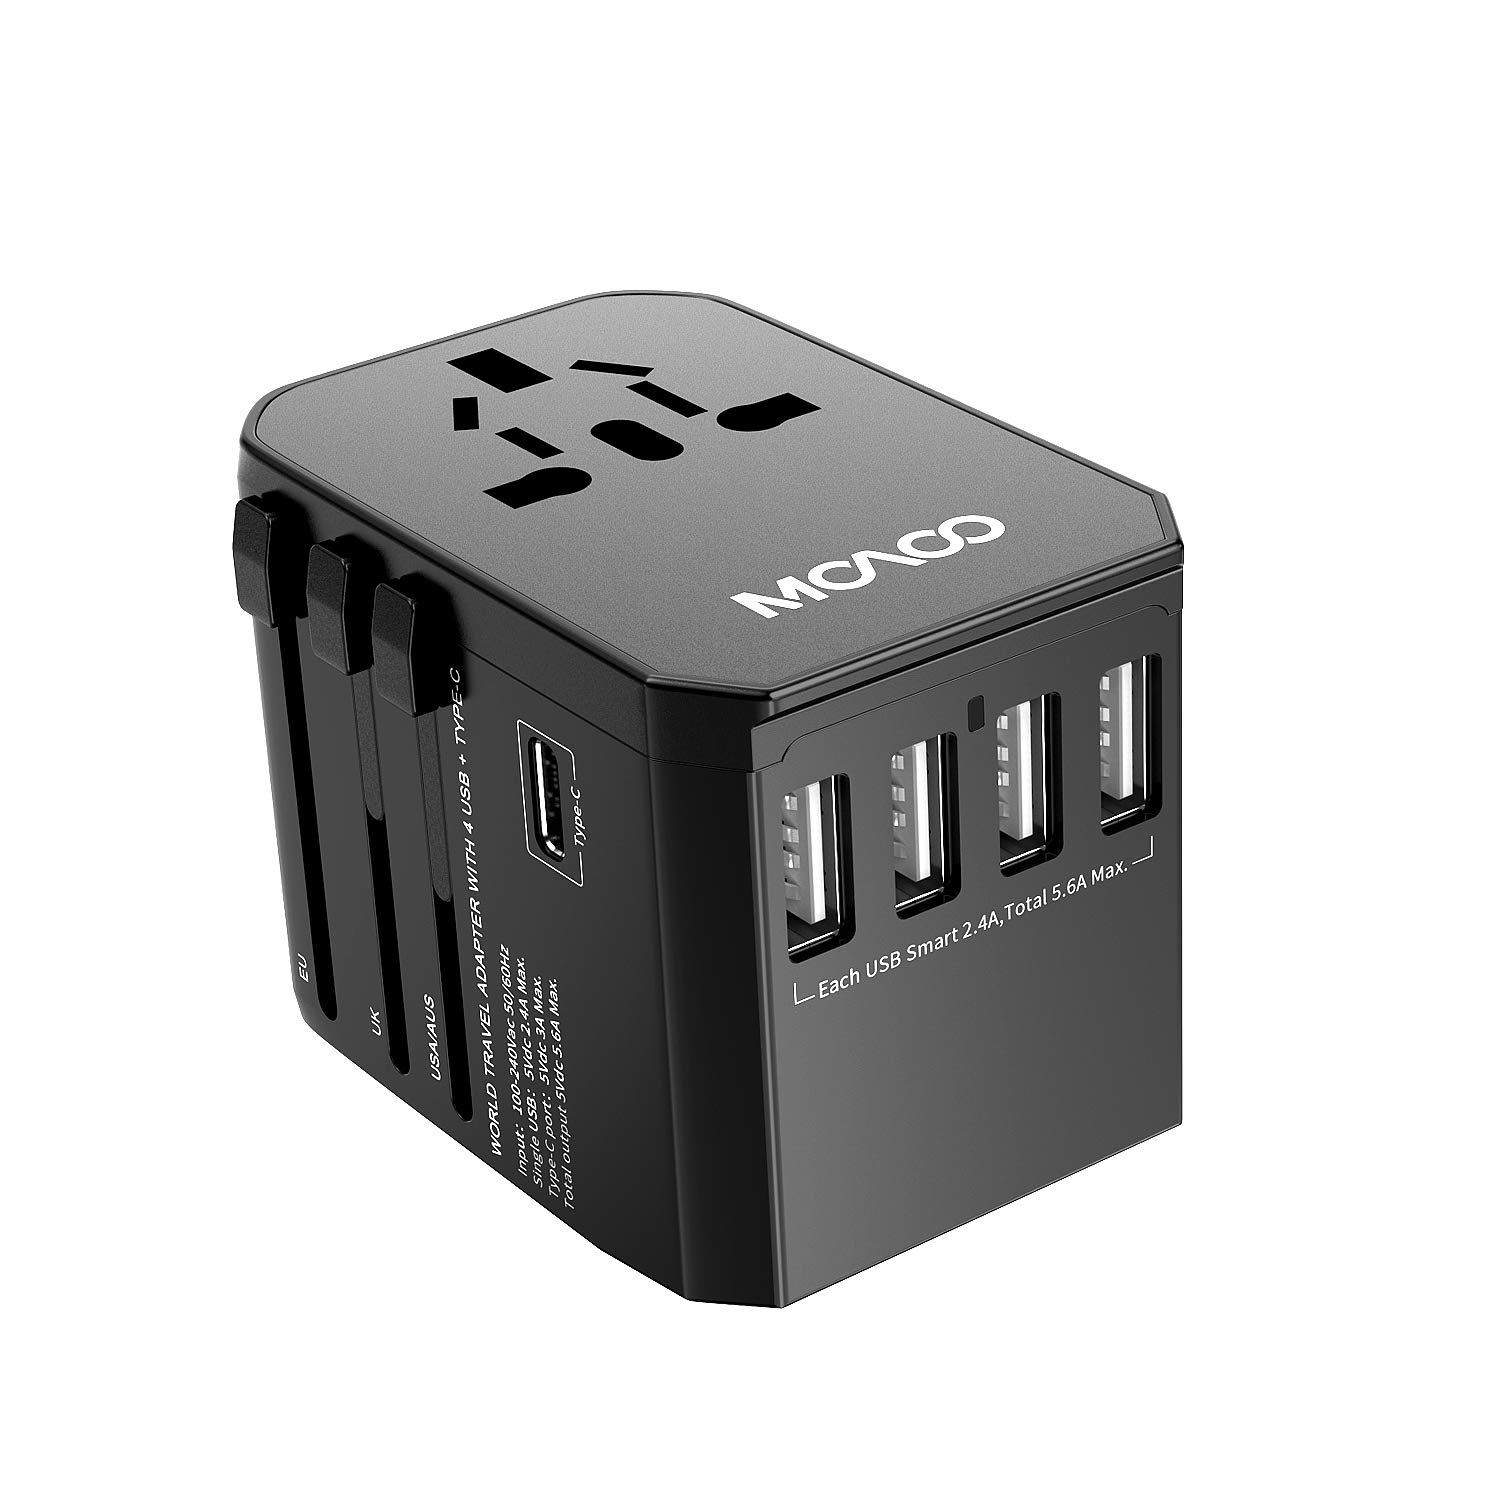 Universal Travel Power Adapter, MOAOO International All in One Worldwide Europe Charger Adaptor AC Power Plug European Adapter with 4 USB Ports 1 Type-C Port for USA UK EU AUS Asia, Black